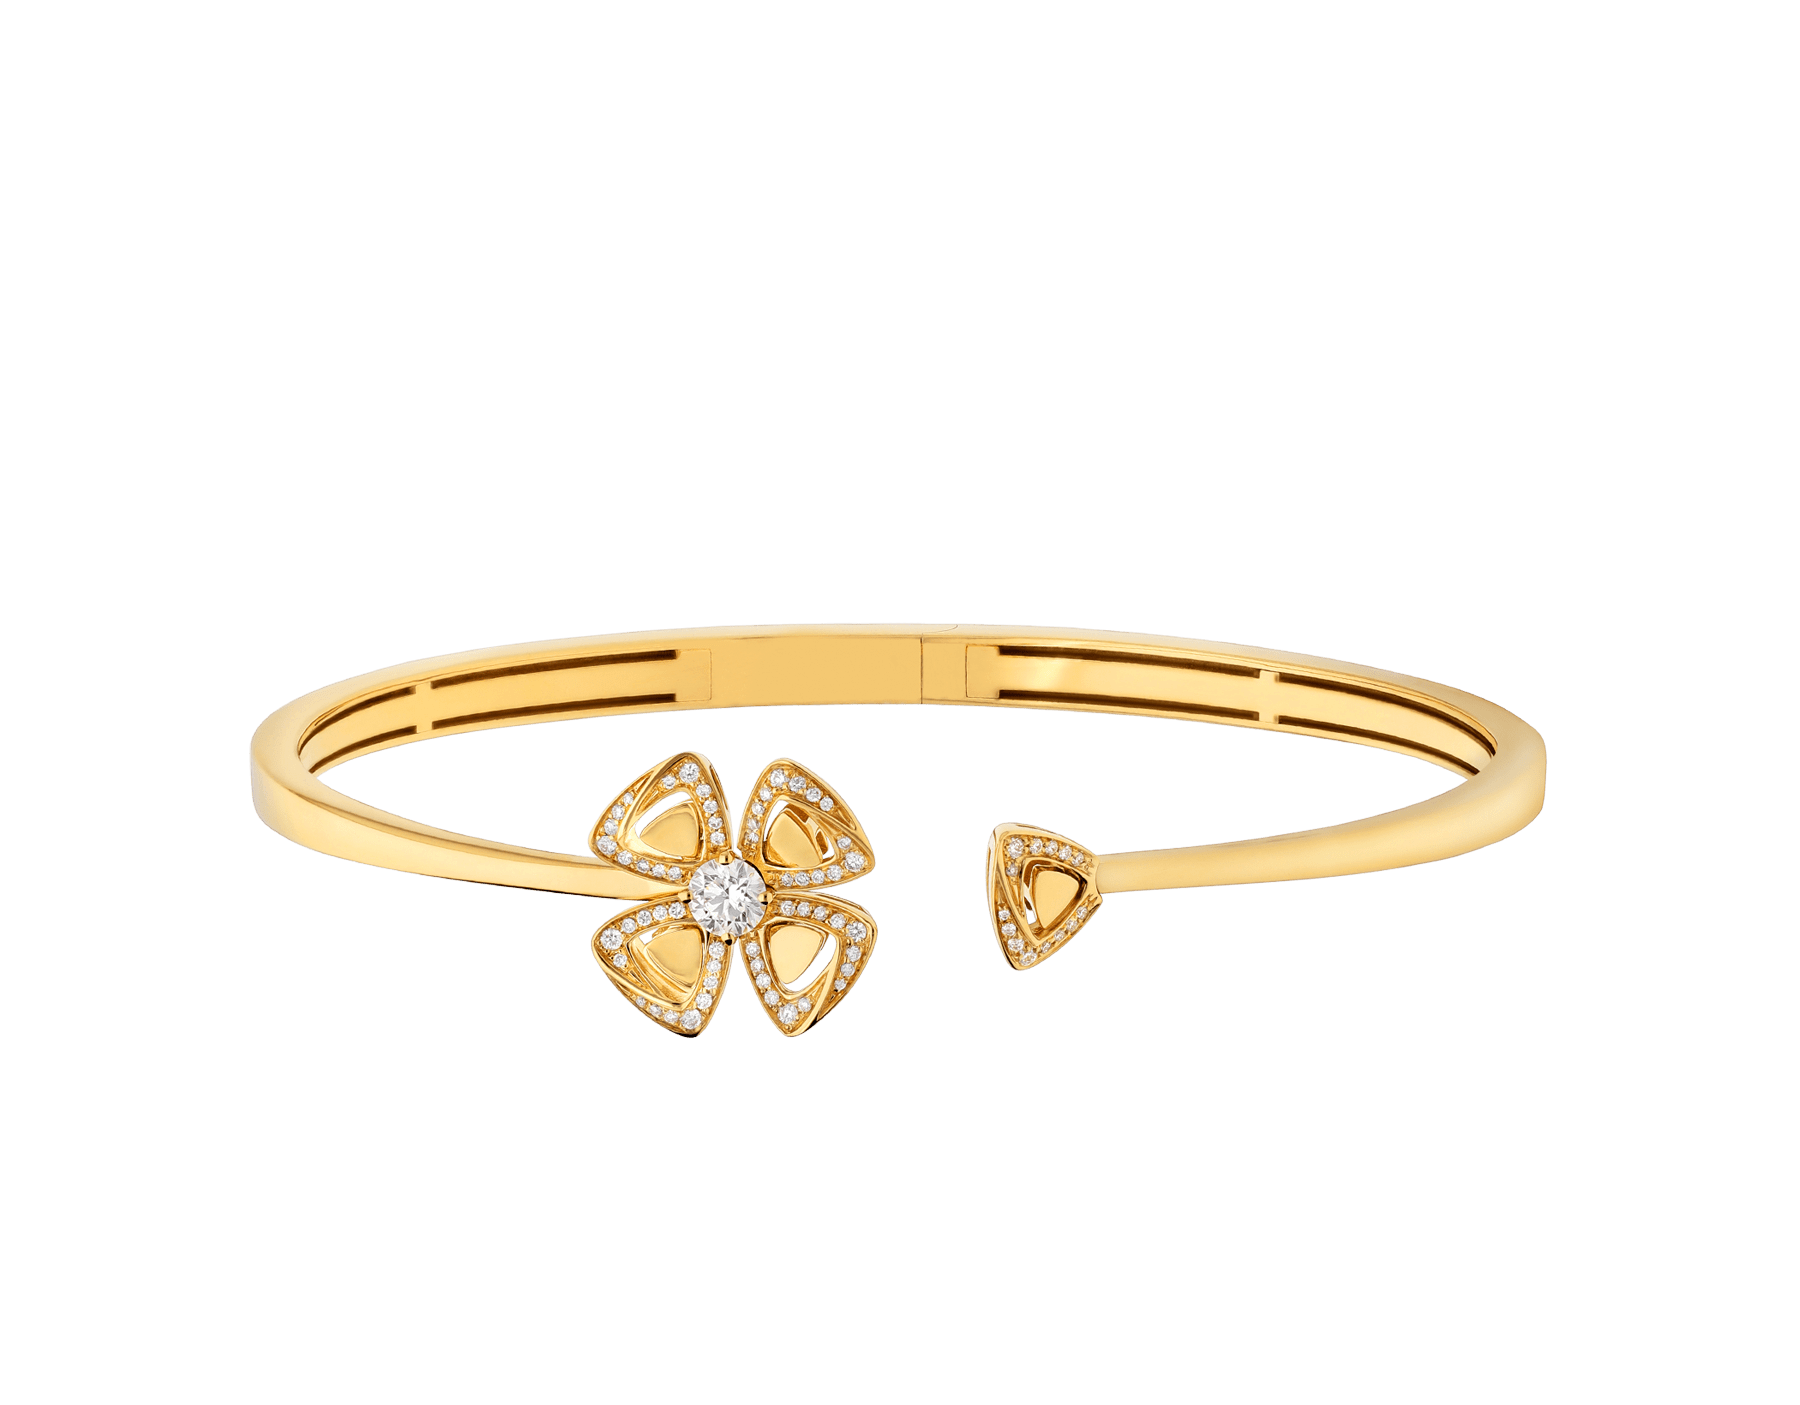 Fiorever 18 kt yellow gold bracelet set with a central diamond (0.20 ct) and pavé diamonds (0.15 ct) BR858997 image 2